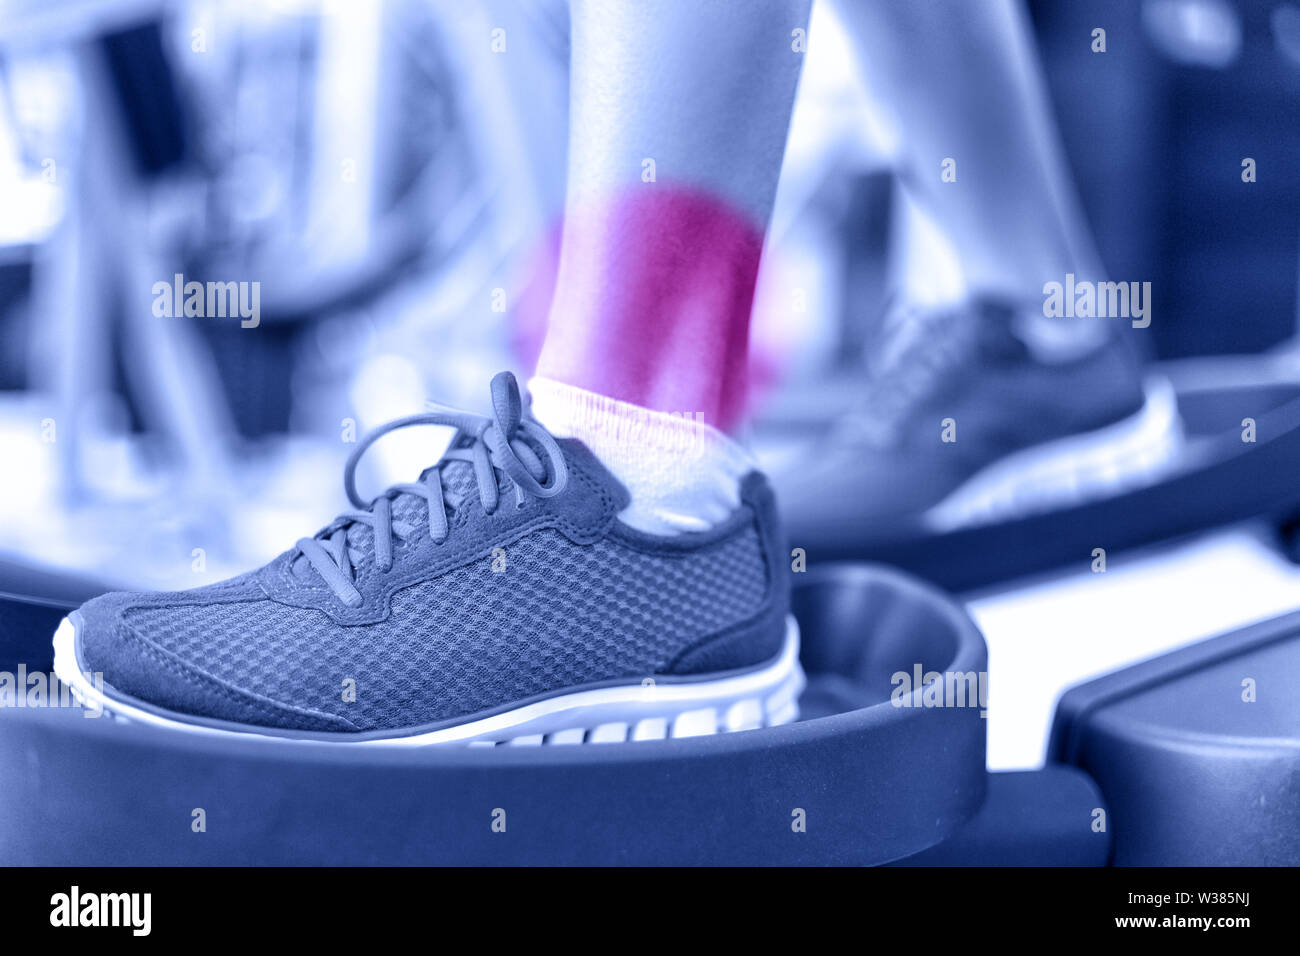 Hurting ankles - pain caused by fitness injury. Closeup of leg with red circle showing painful area of female athlete training on elliptical exercise machine. Sprained ankle concept. - Stock Image